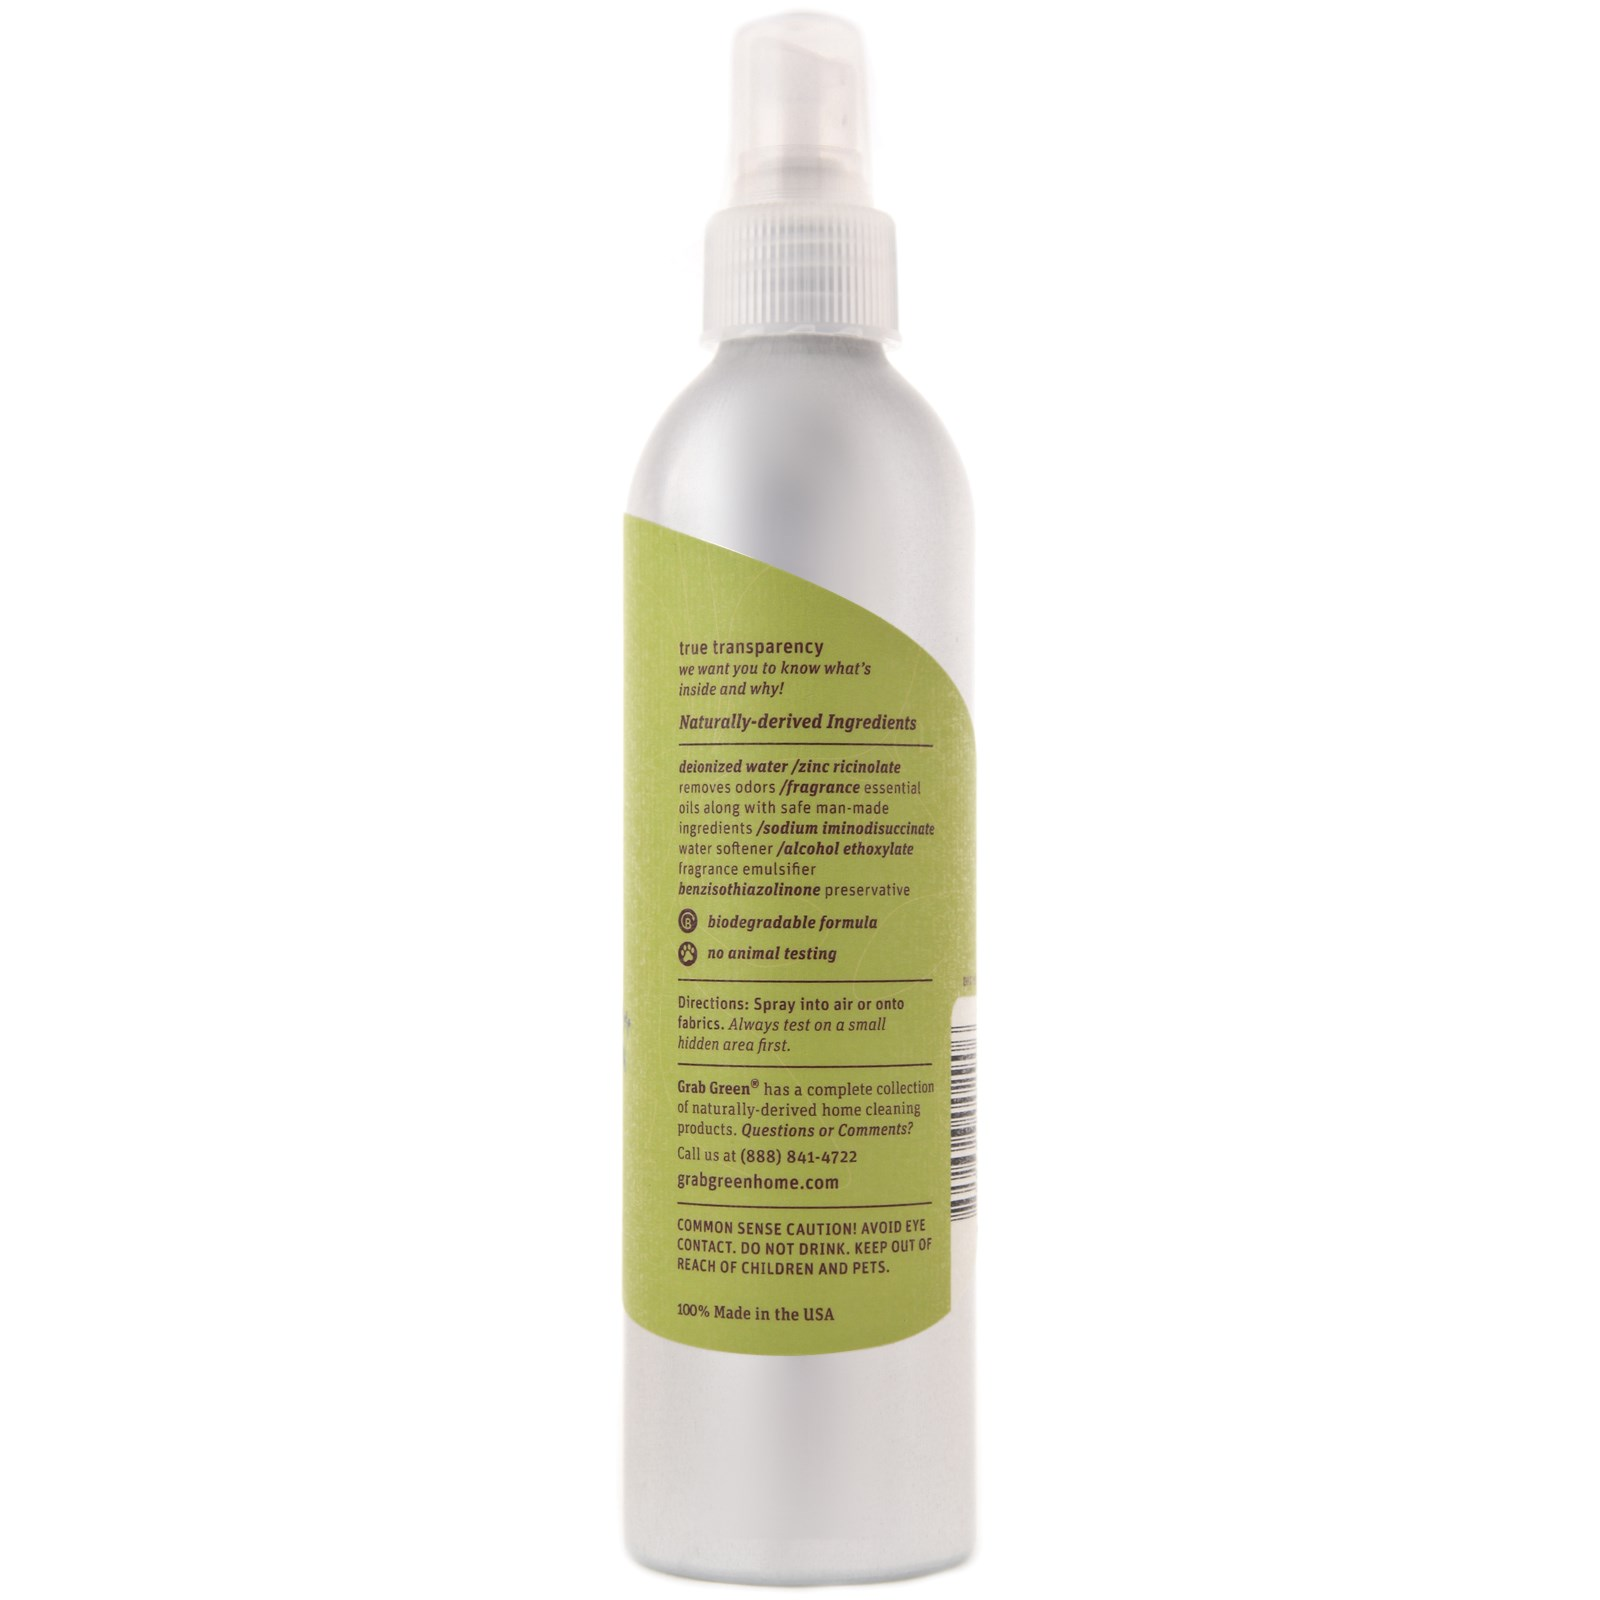 7 Ounce Bottle Vetiver 3-Pack Phthalate-Free Room /& Fabric Freshener Grab Green Naturally-Derived